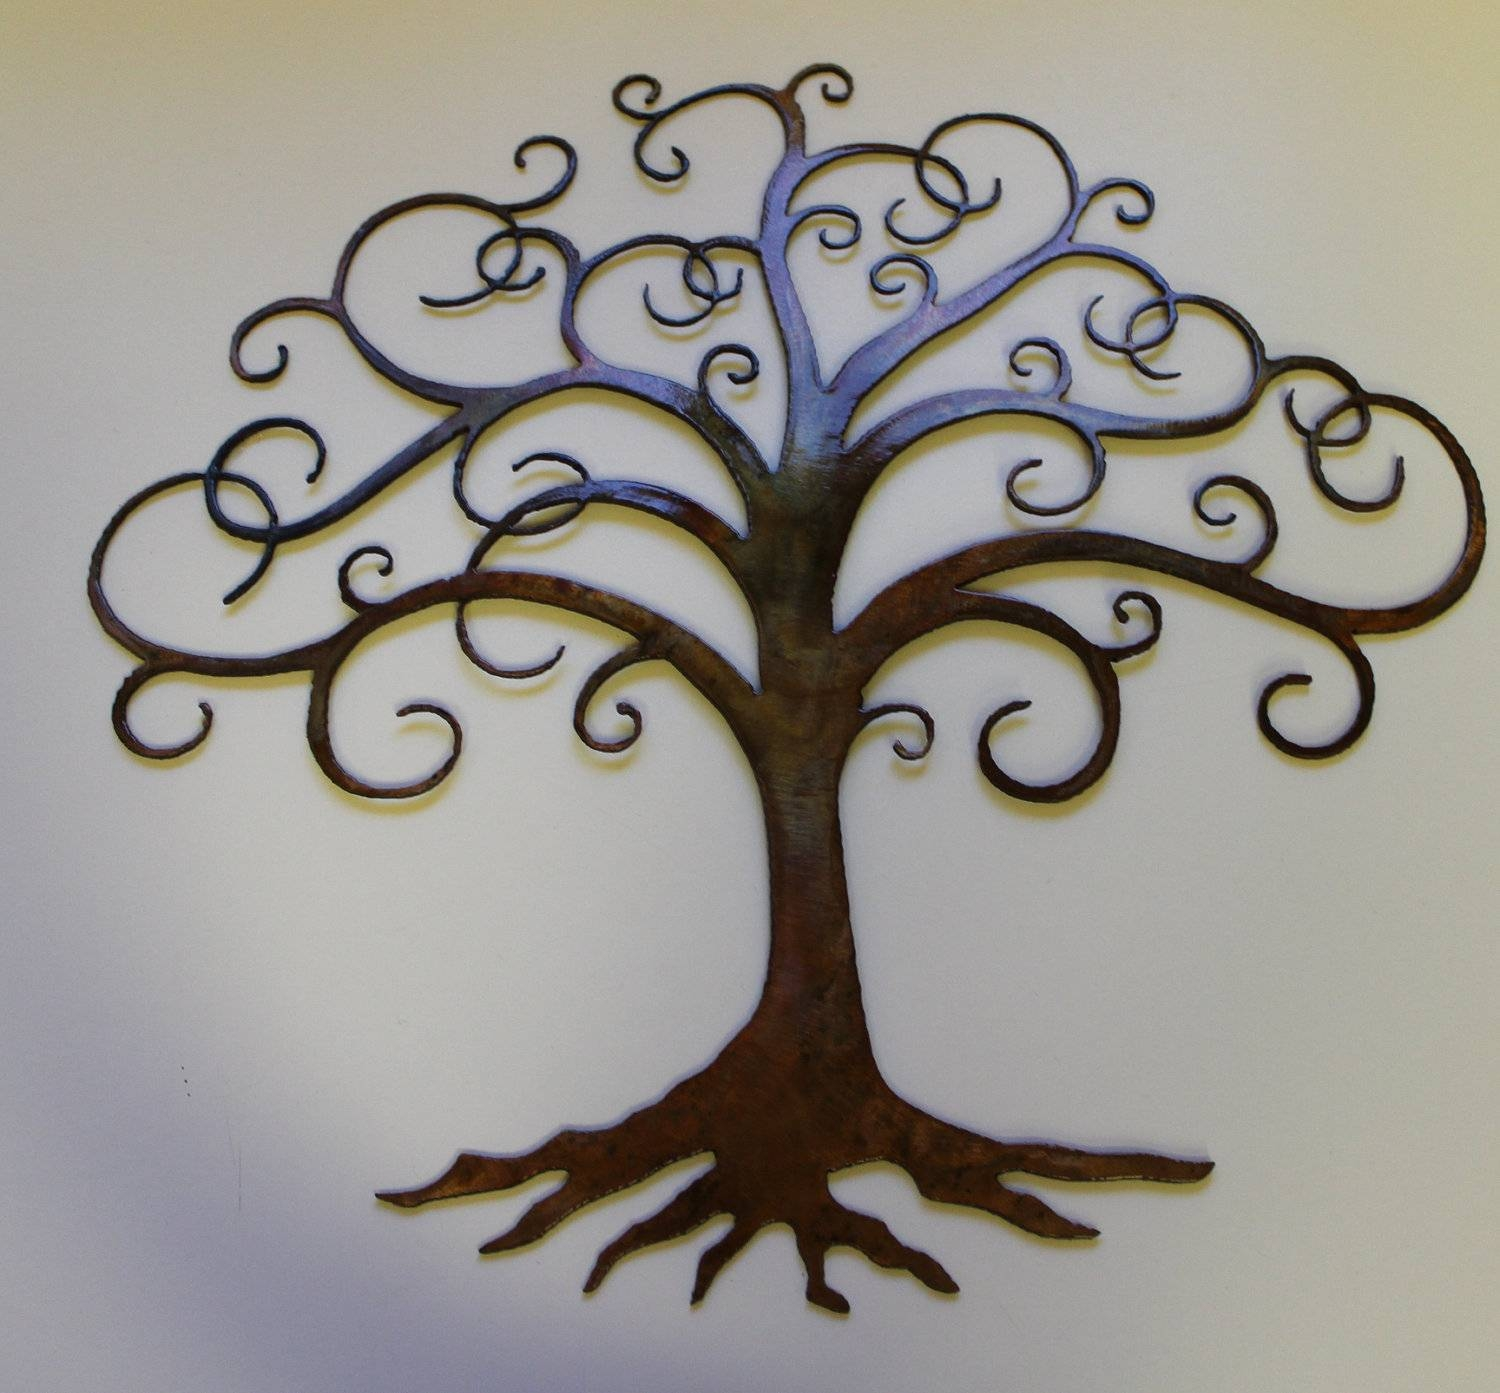 Wall Art Designs: Metal Wall Art Trees Breathtaking Large Metal With Most Up To Date Metal Wall Art Trees (View 20 of 20)